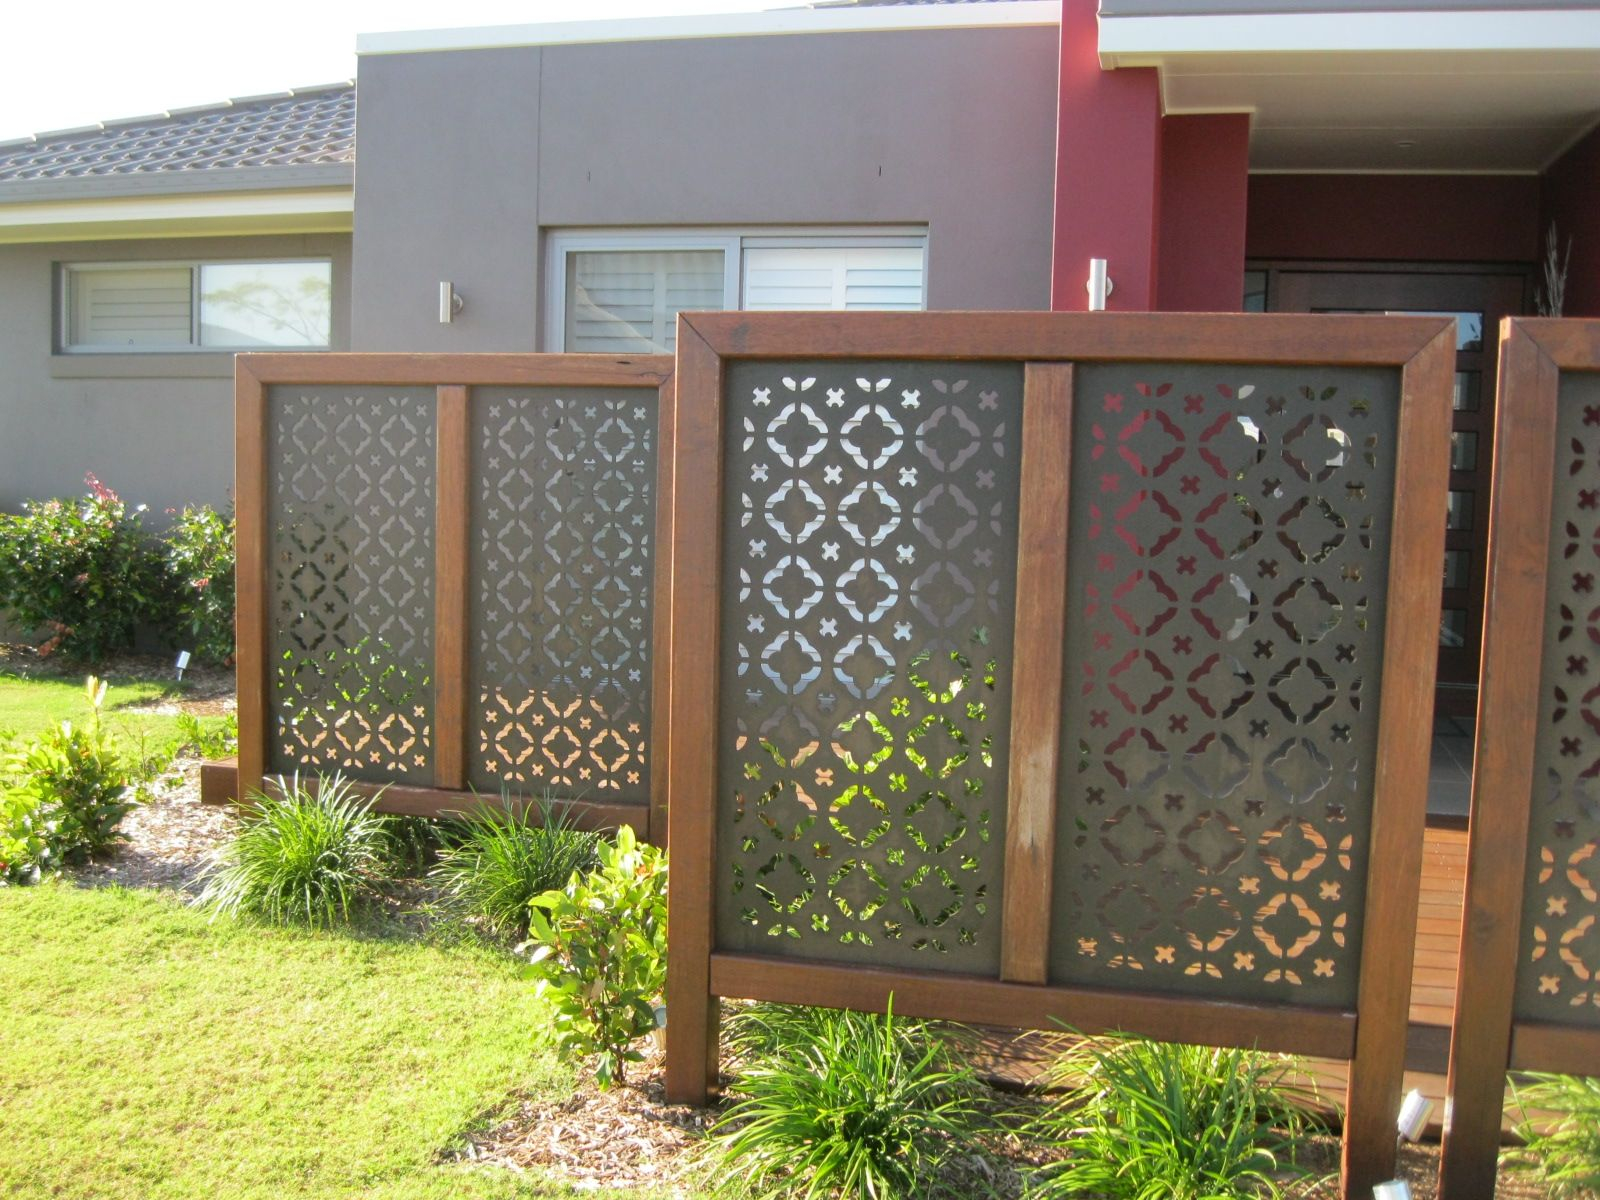 Outdoor Privacy Screens Laser Cut Metal Screen Decorative Iron in Backyard Screen Ideas